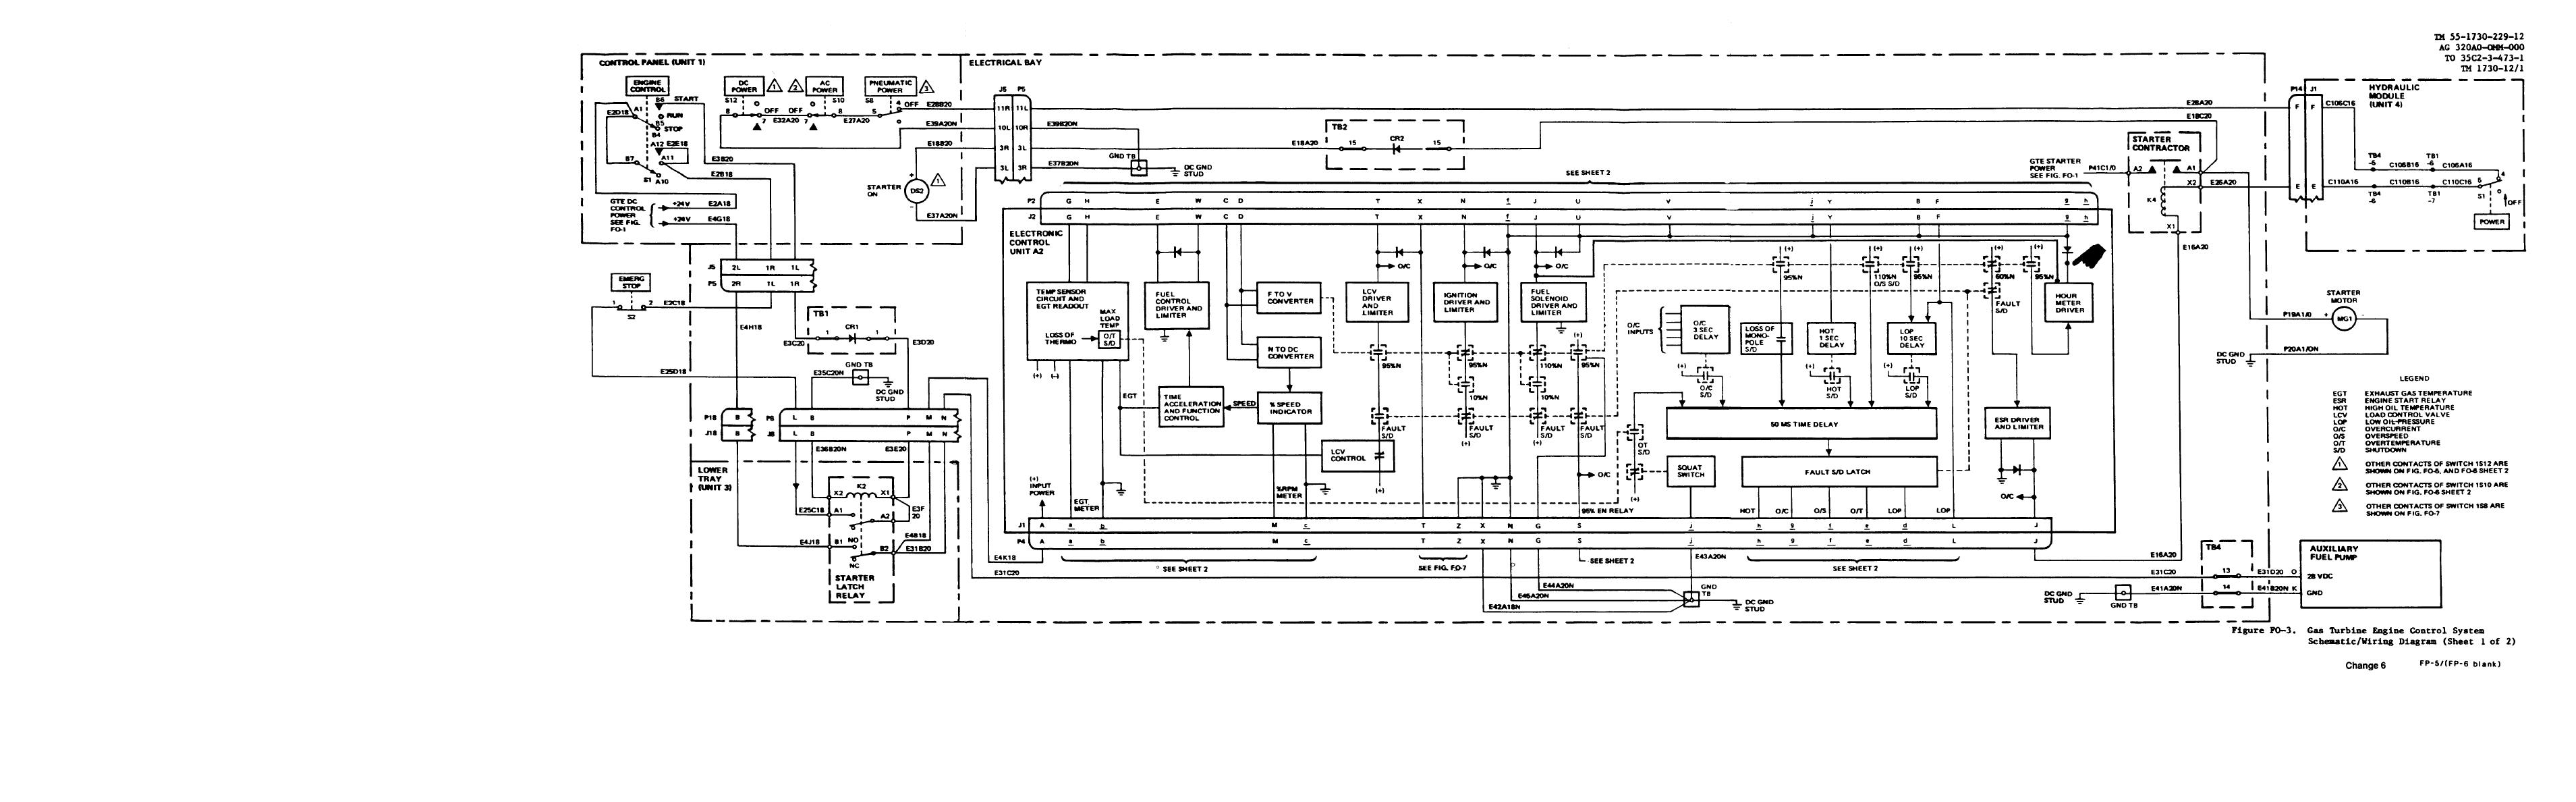 Figure Fo 3 Gas Turbine Engine Control System Schematic Wiring 2 Diagram Tm 55 1730 229 12 Power Unit Aviation Multi Output Gted Electrical Hydraulic Pneumatic Agpu Wheel Mounted Self Propelled Towable Manual Page Navigation